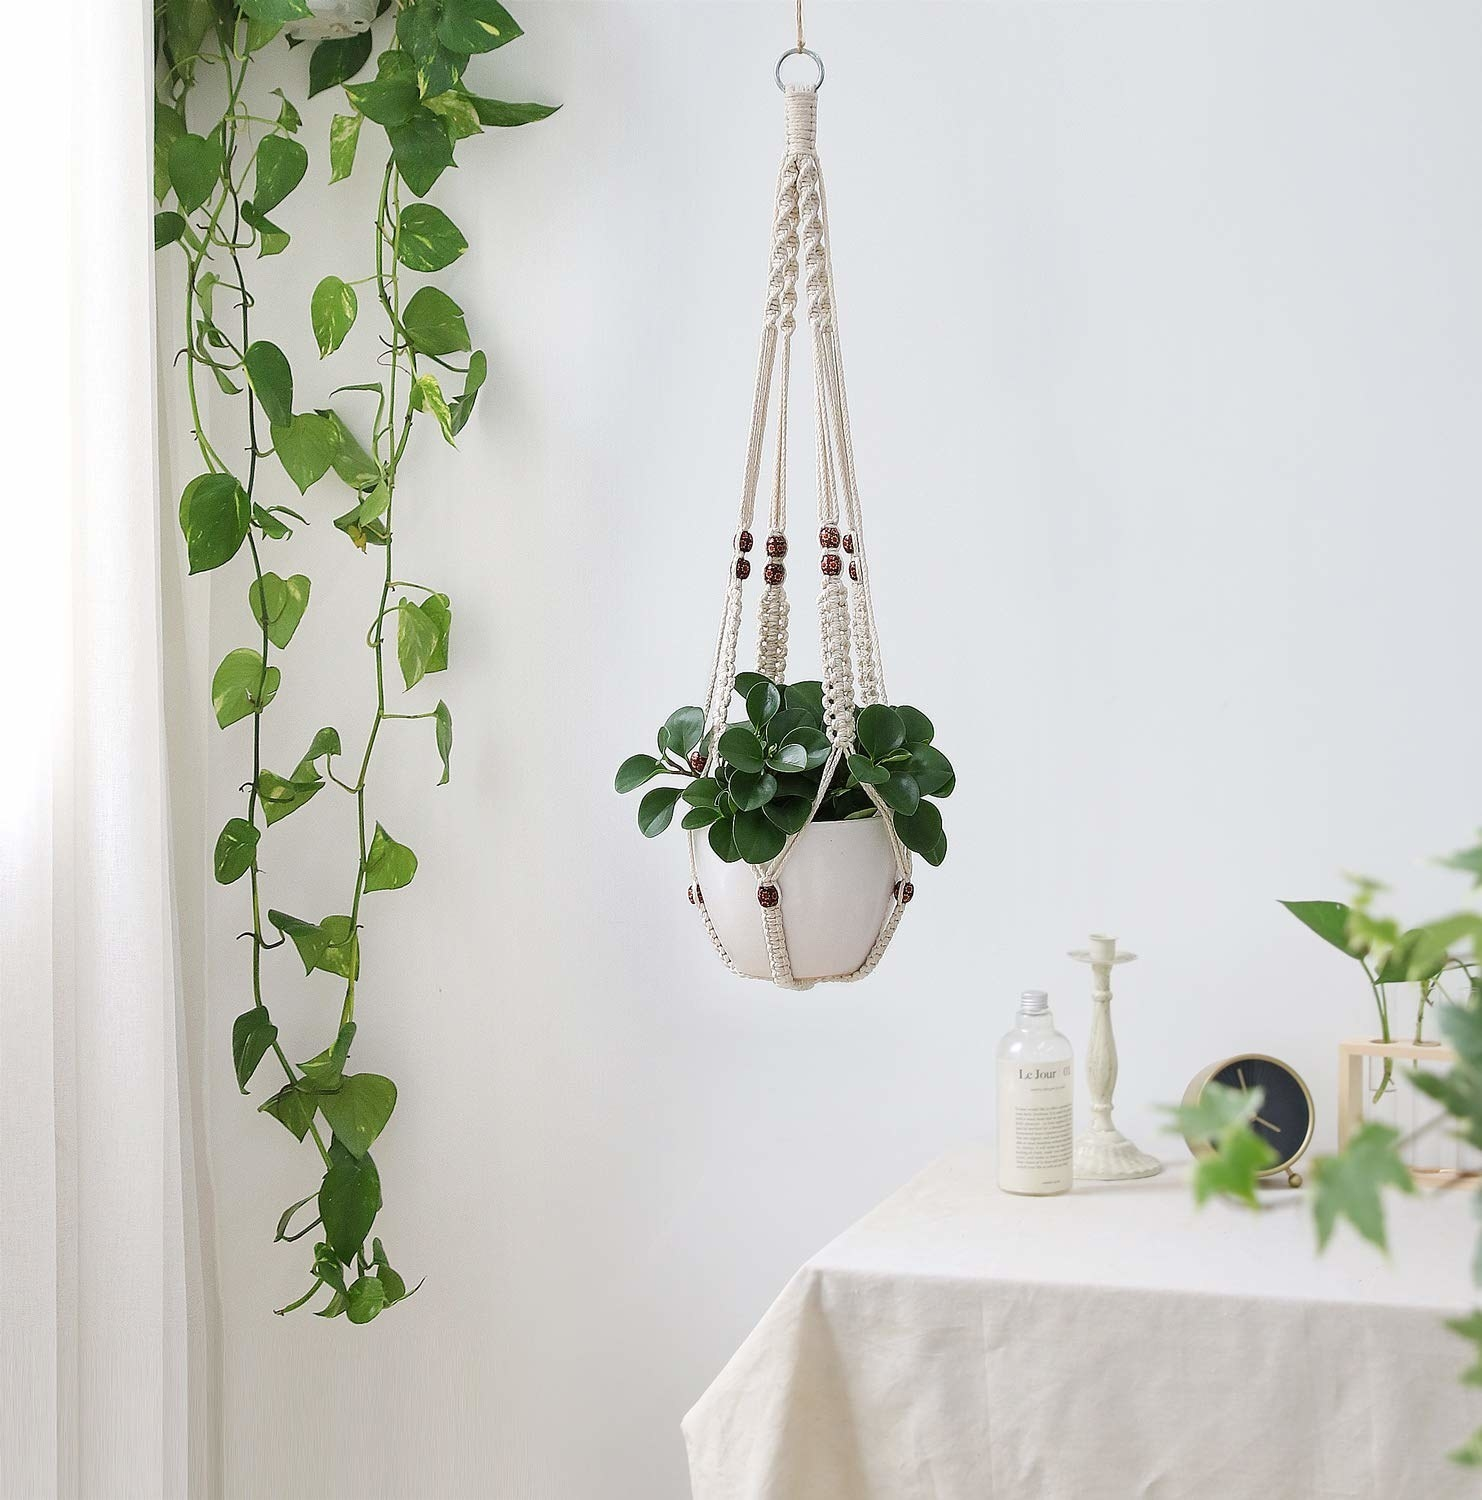 A plant hanging from the cream macrame strings with brown beads